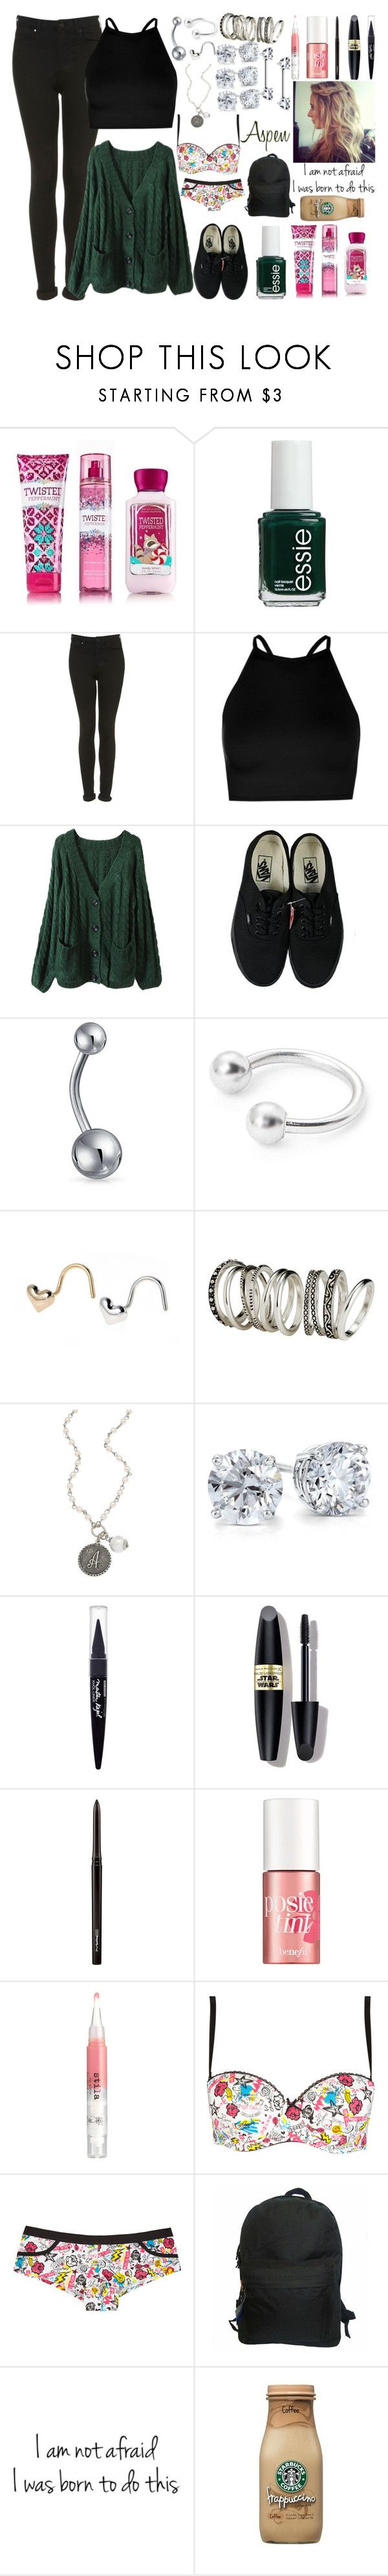 """""""X"""" by ohgoditsyou-k ❤ liked on Polyvore featuring Topshop, Boohoo, Vans, Bling Jewelry, H&M, John Wind, Blue Nile, Maybelline, Max Factor and MAC Cosmetics"""